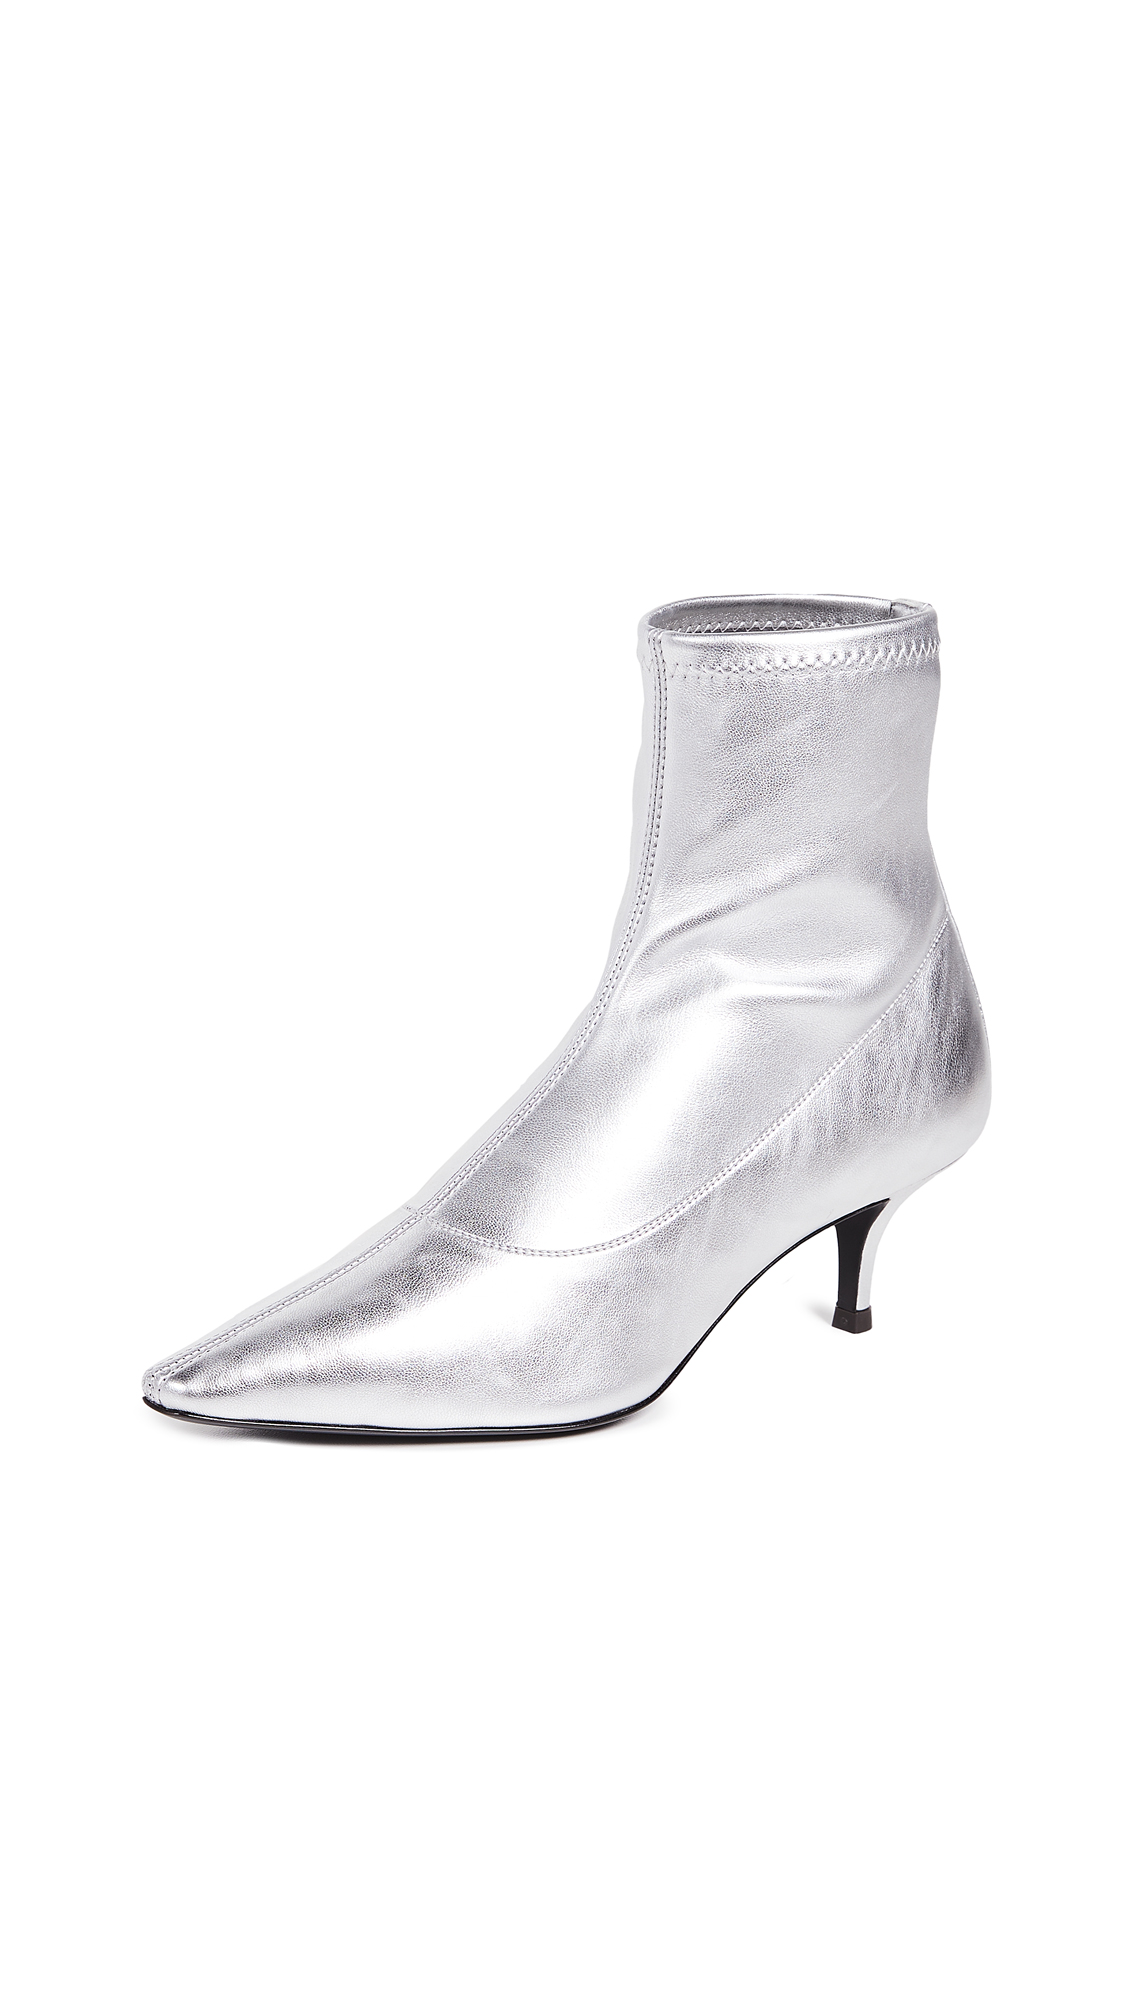 Giuseppe Zanotti Point Toe Metallic Booties - Silver